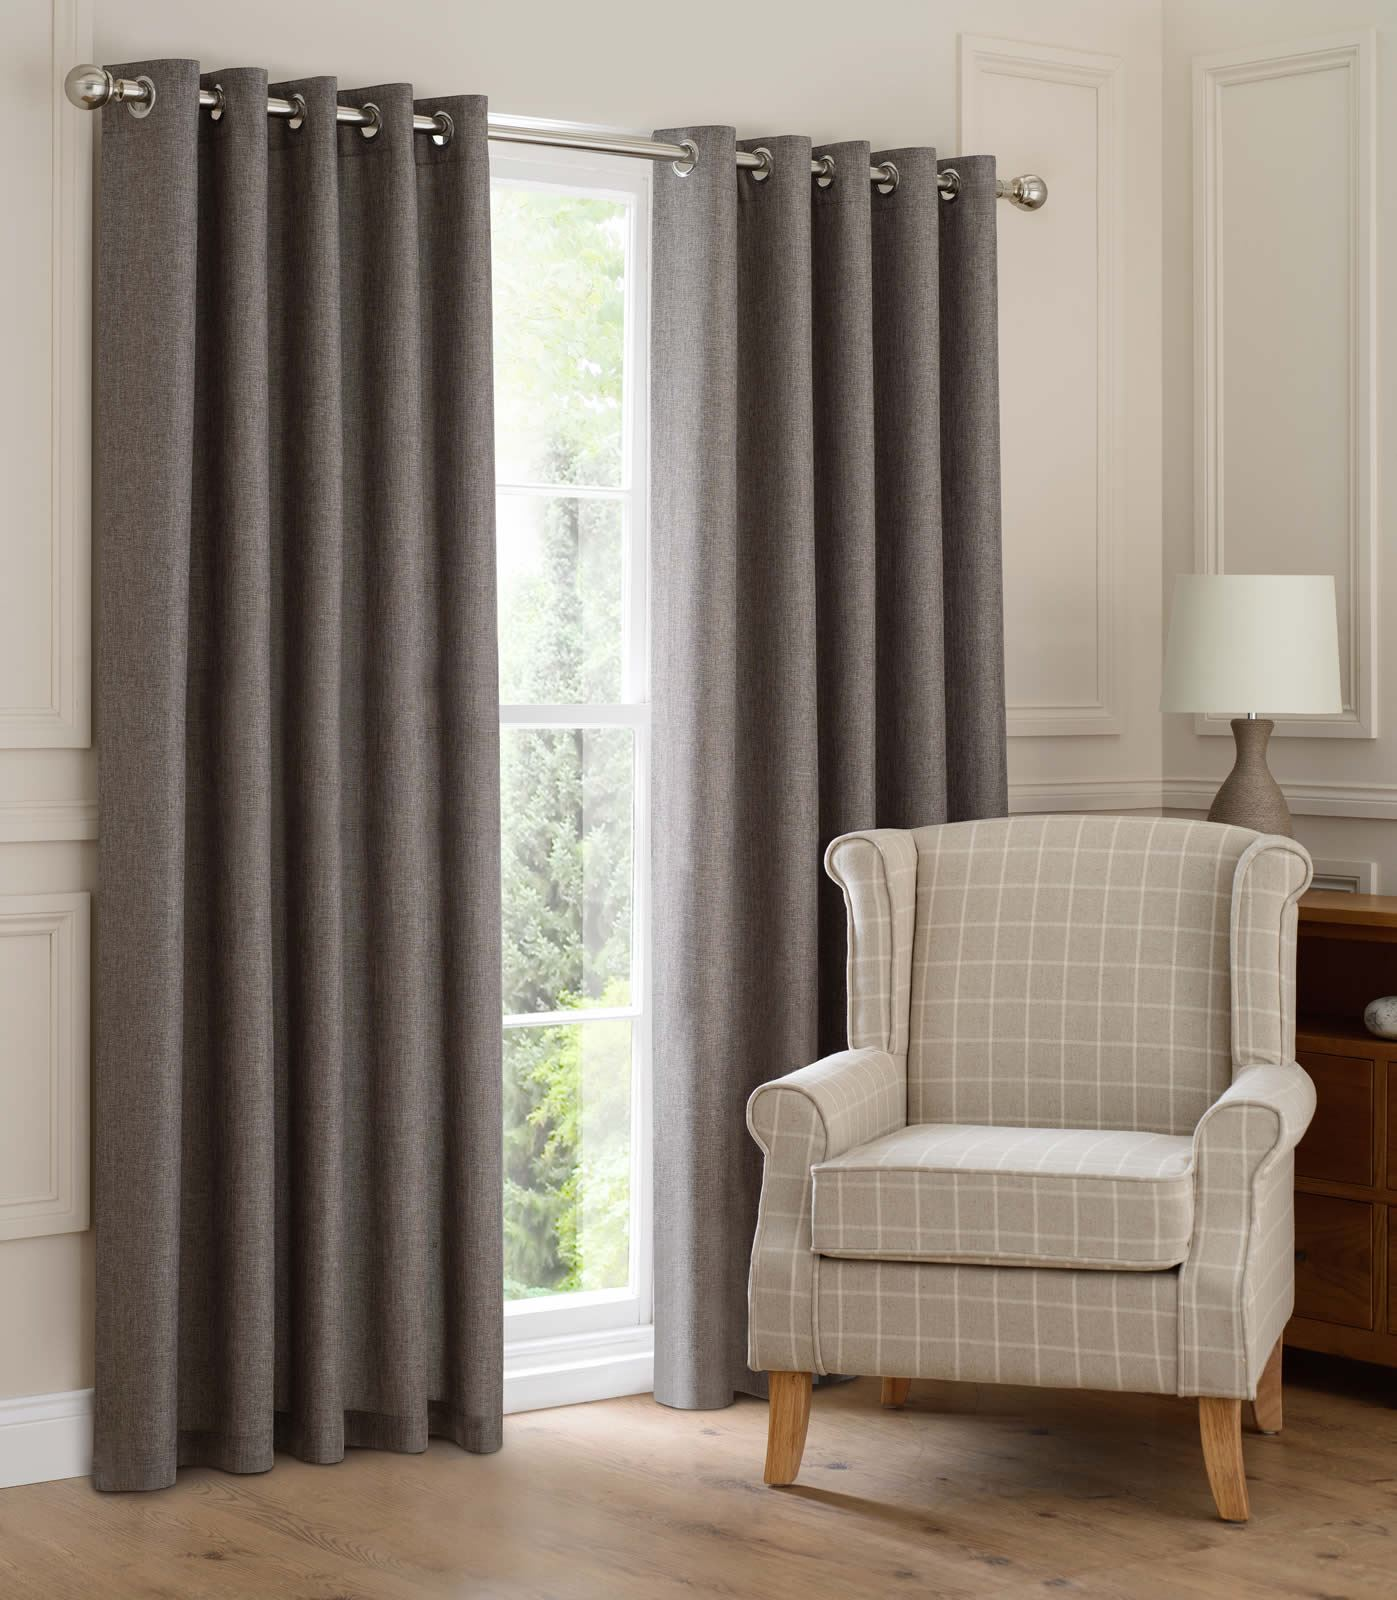 Montana Eyelet Curtains